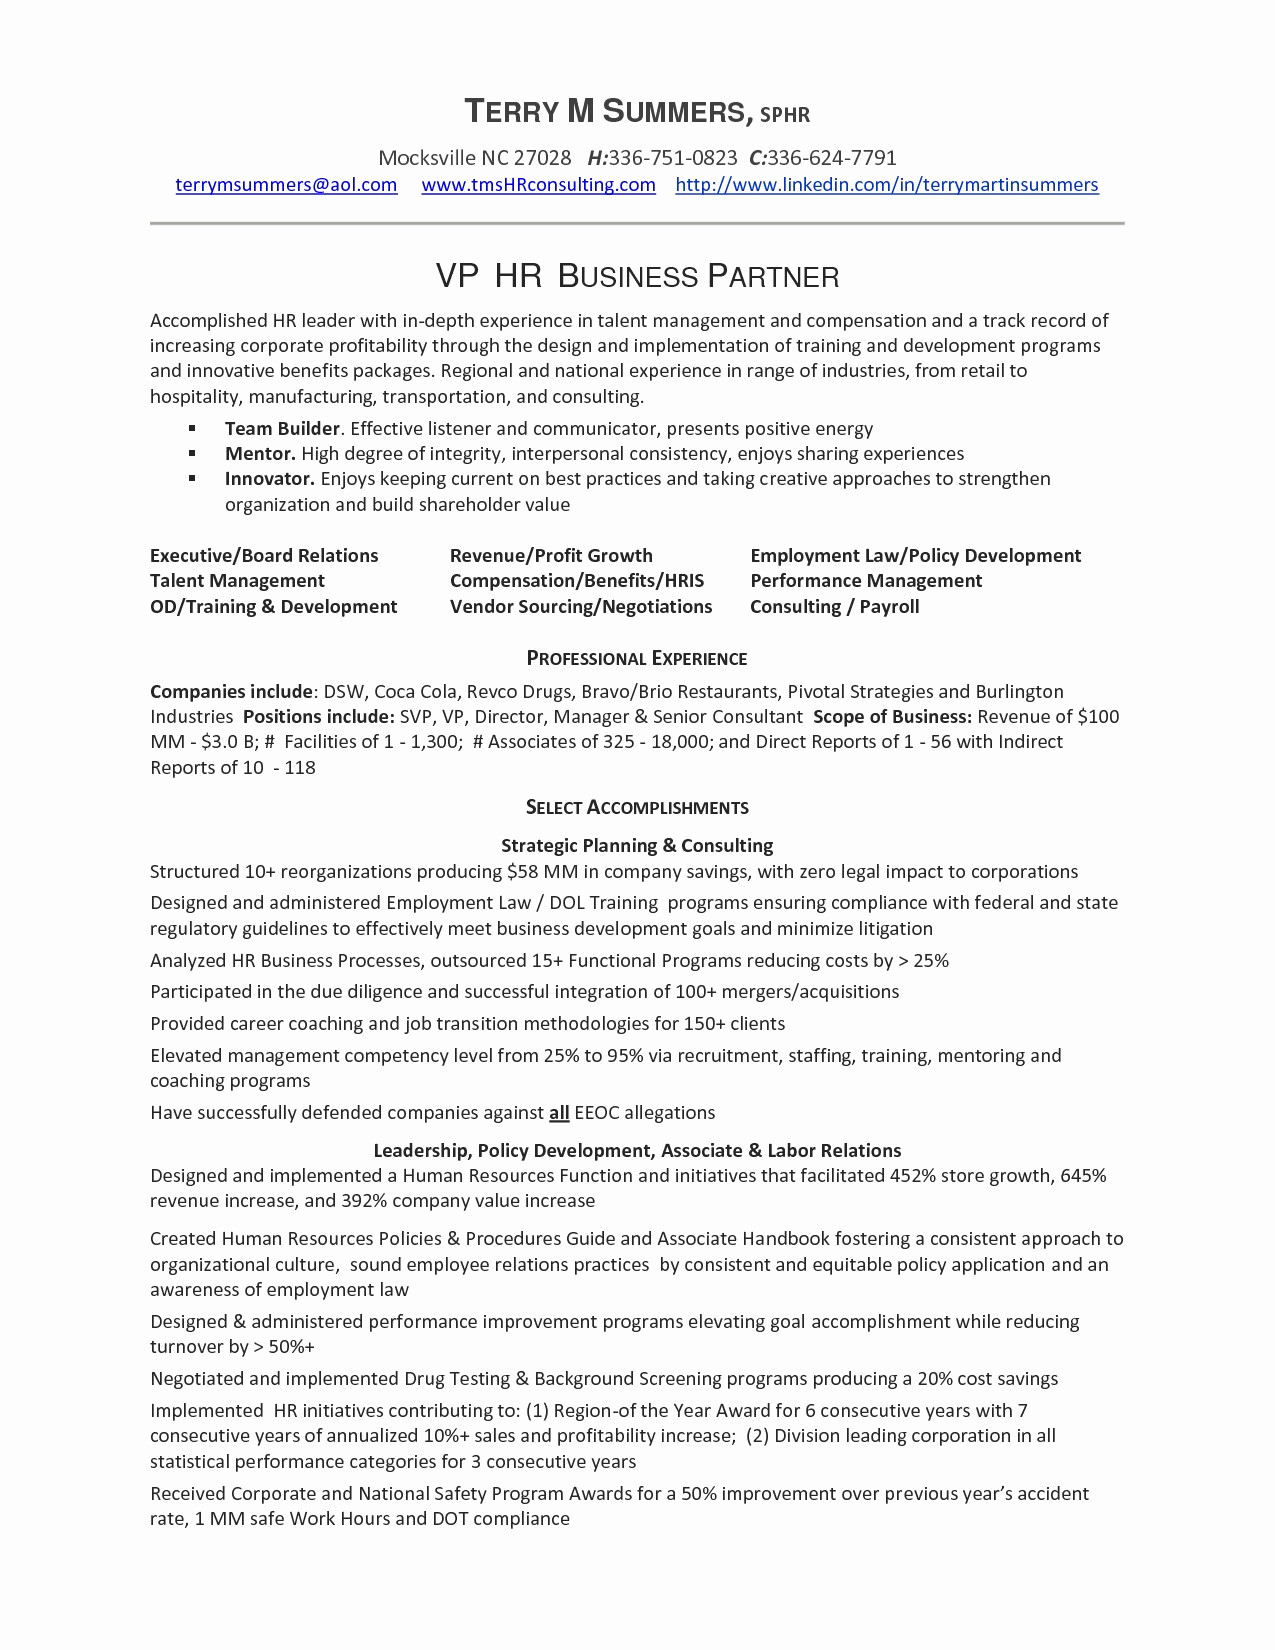 Letter Of Indemnification Template - Unique Business associate Agreement Template